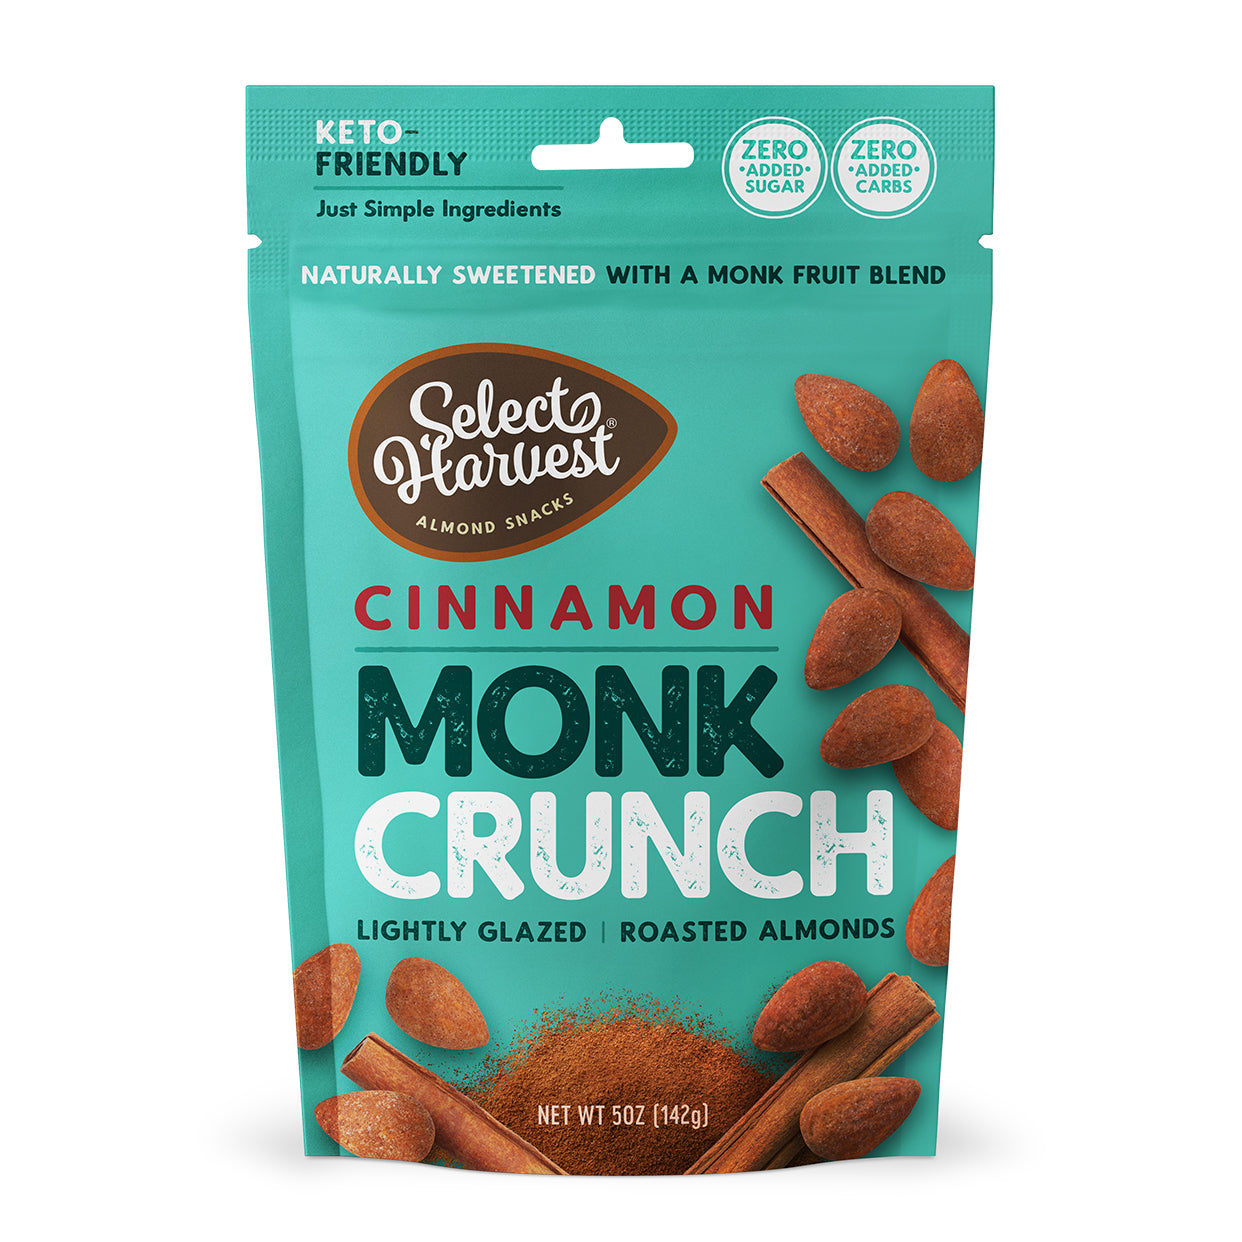 Cinnamon Monk Crunch